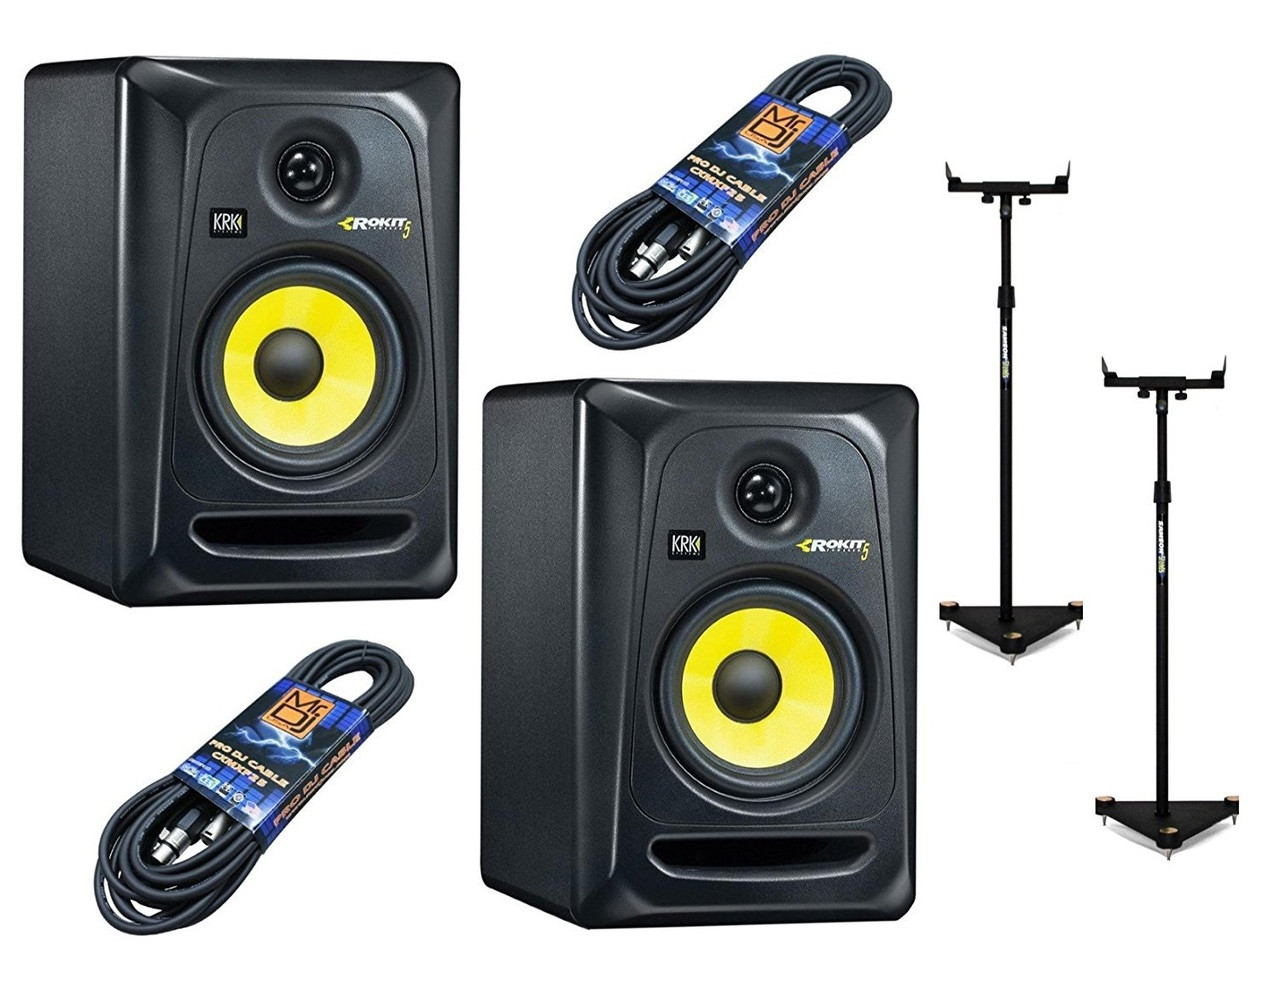 2 KRK RP5G3-NA With Pair Of Samson MS200 Monitor Stands and 2 Mr. DJ 25ft XLR to XLR cables